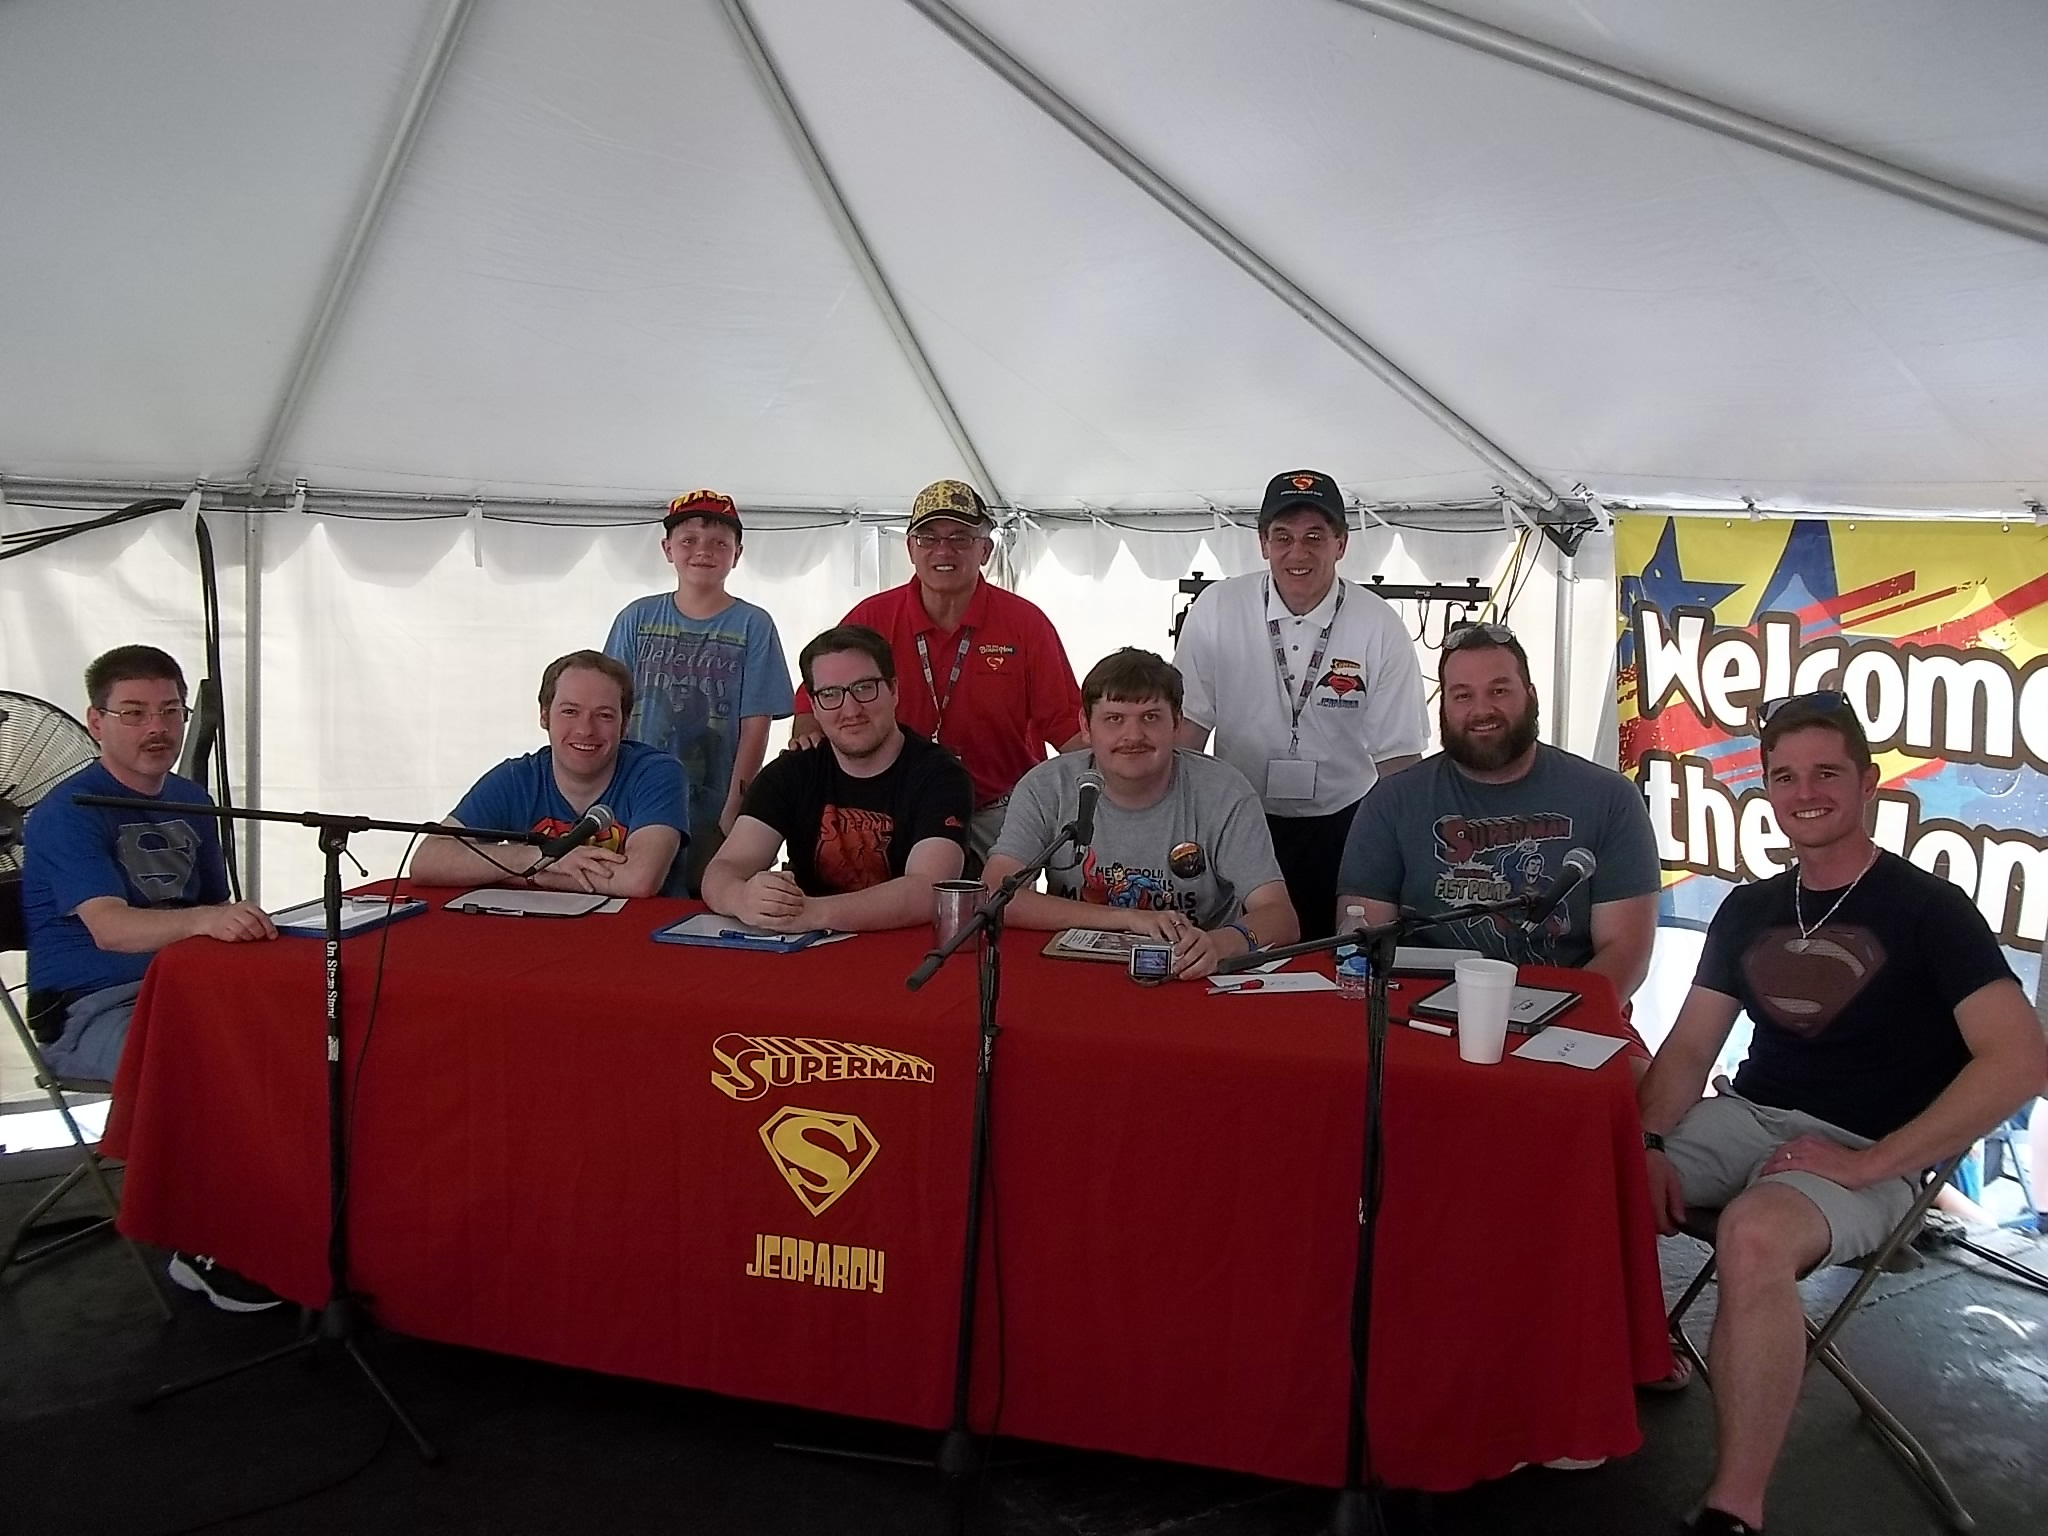 The contestants at 2016 The USA Boxing News Superman jeopardy Game